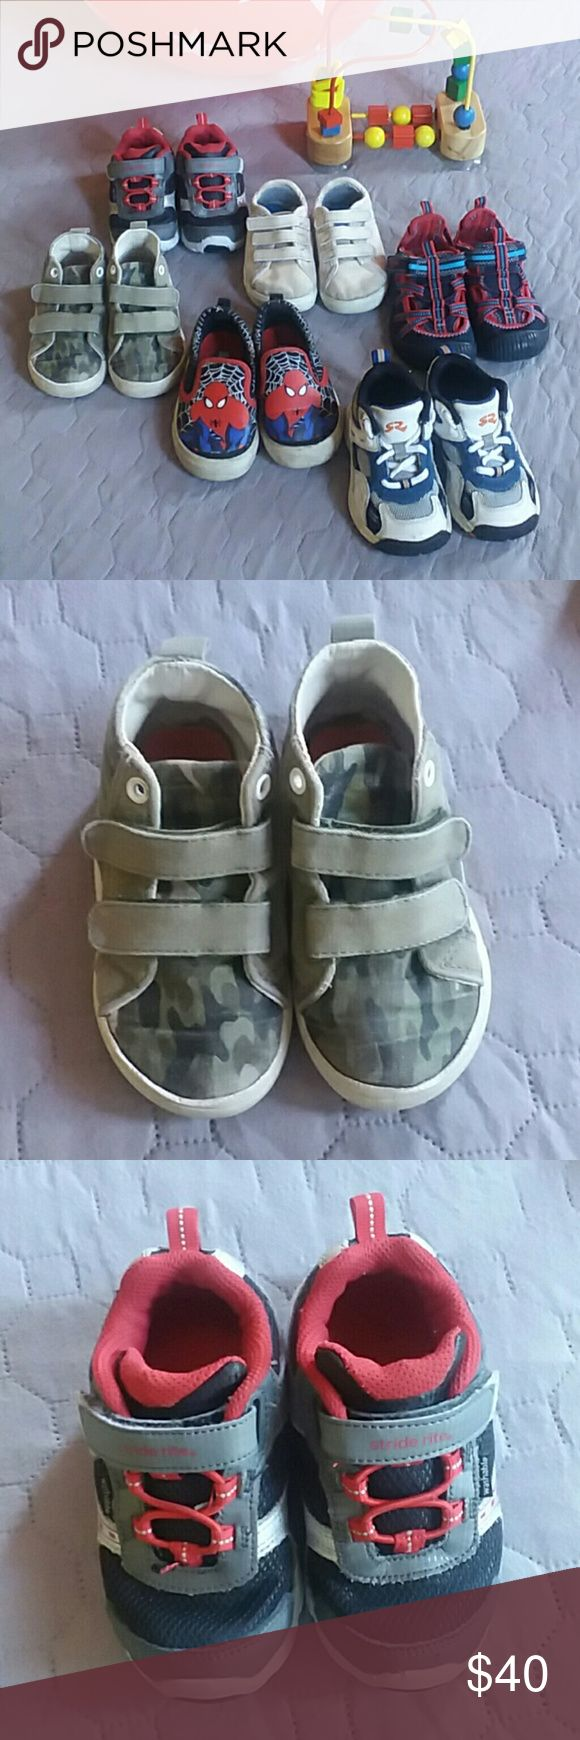 Boys toddler shoes sz 7. L@@K!! Six pair of shoes for toddlers size 7  2 Stride Rite pairs of sneakers 1 Carter's camo boots 1 OKBG full cover sandals 1 And1 three strap tennies 1 Marvel Spiderman Stride Rite Shoes